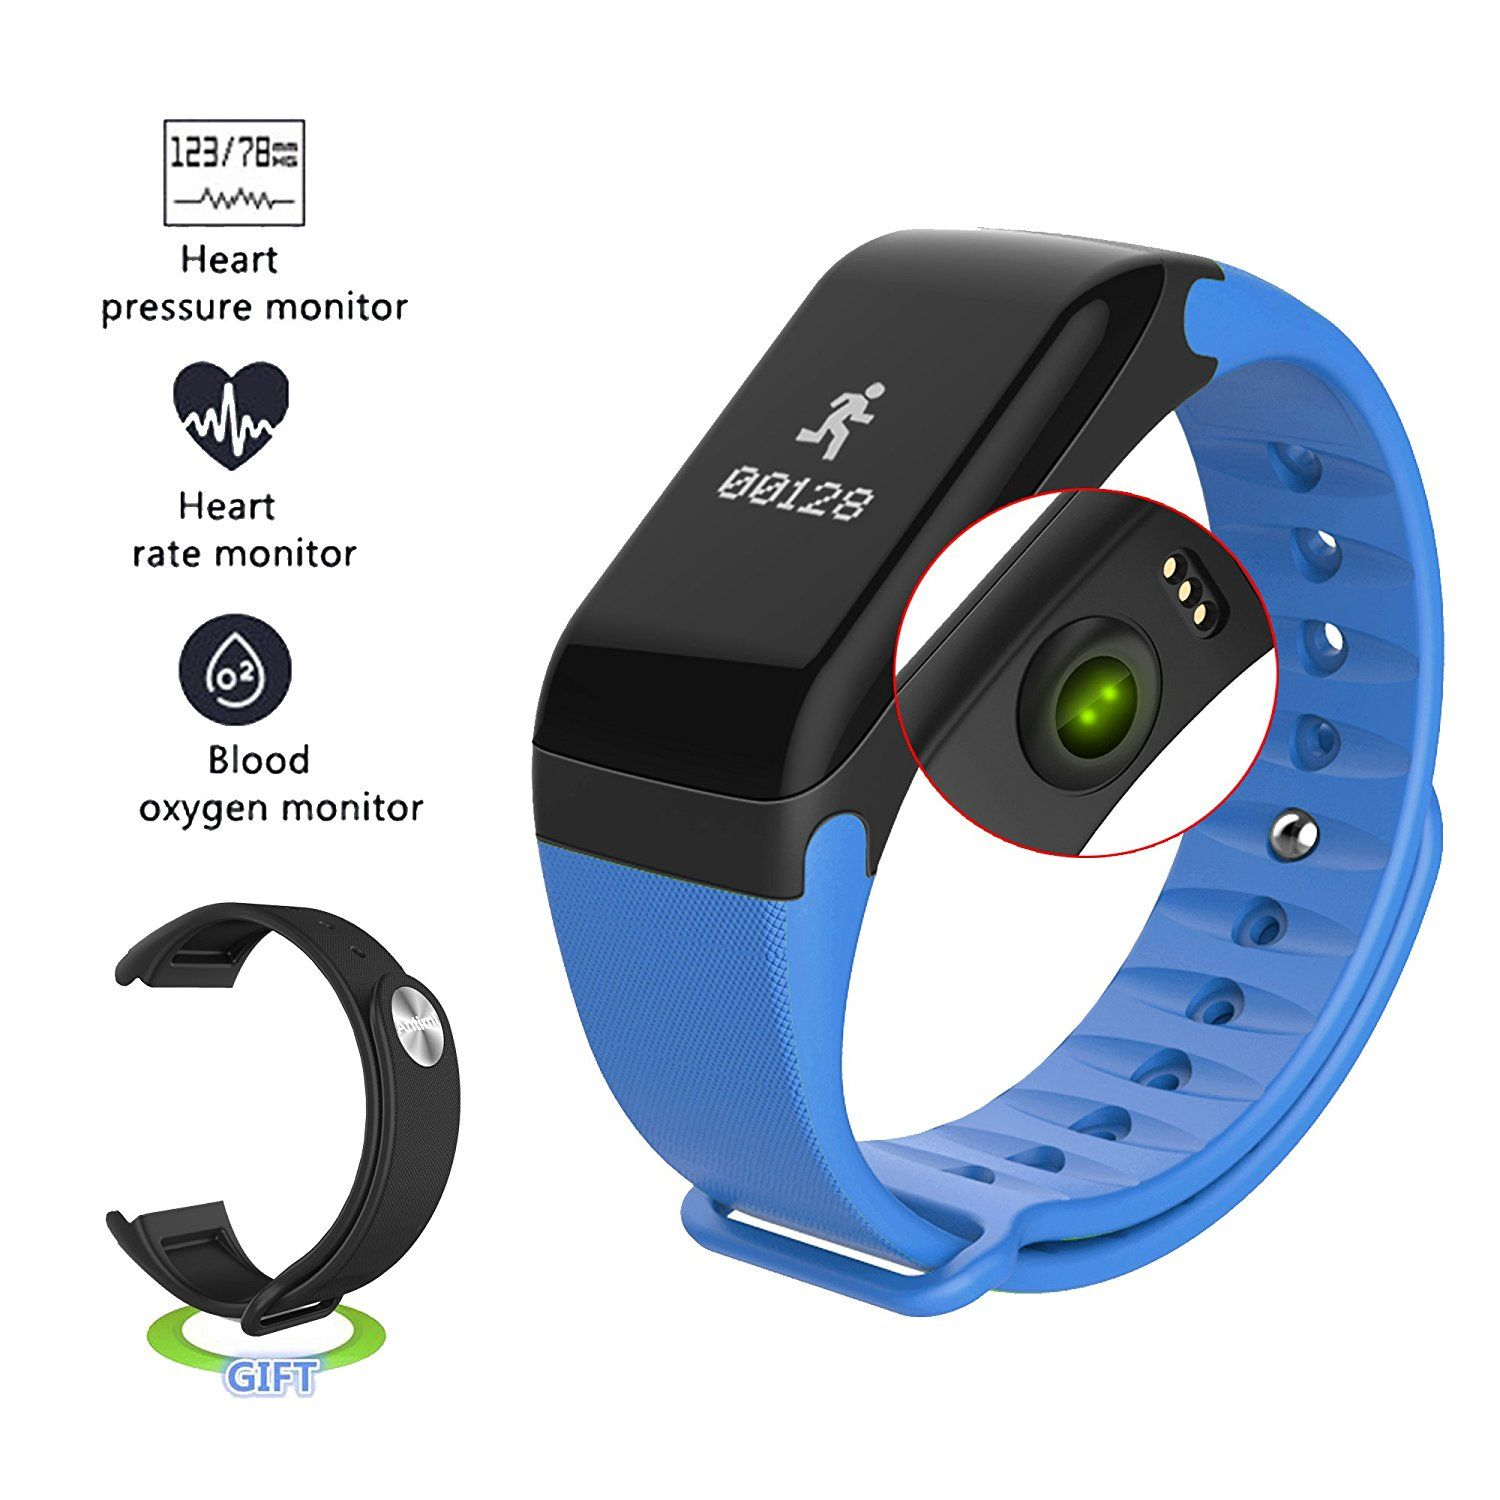 rated best hub fitness the at orig macworld point activity tracker reviewed price and every trackers article watches hardware primary